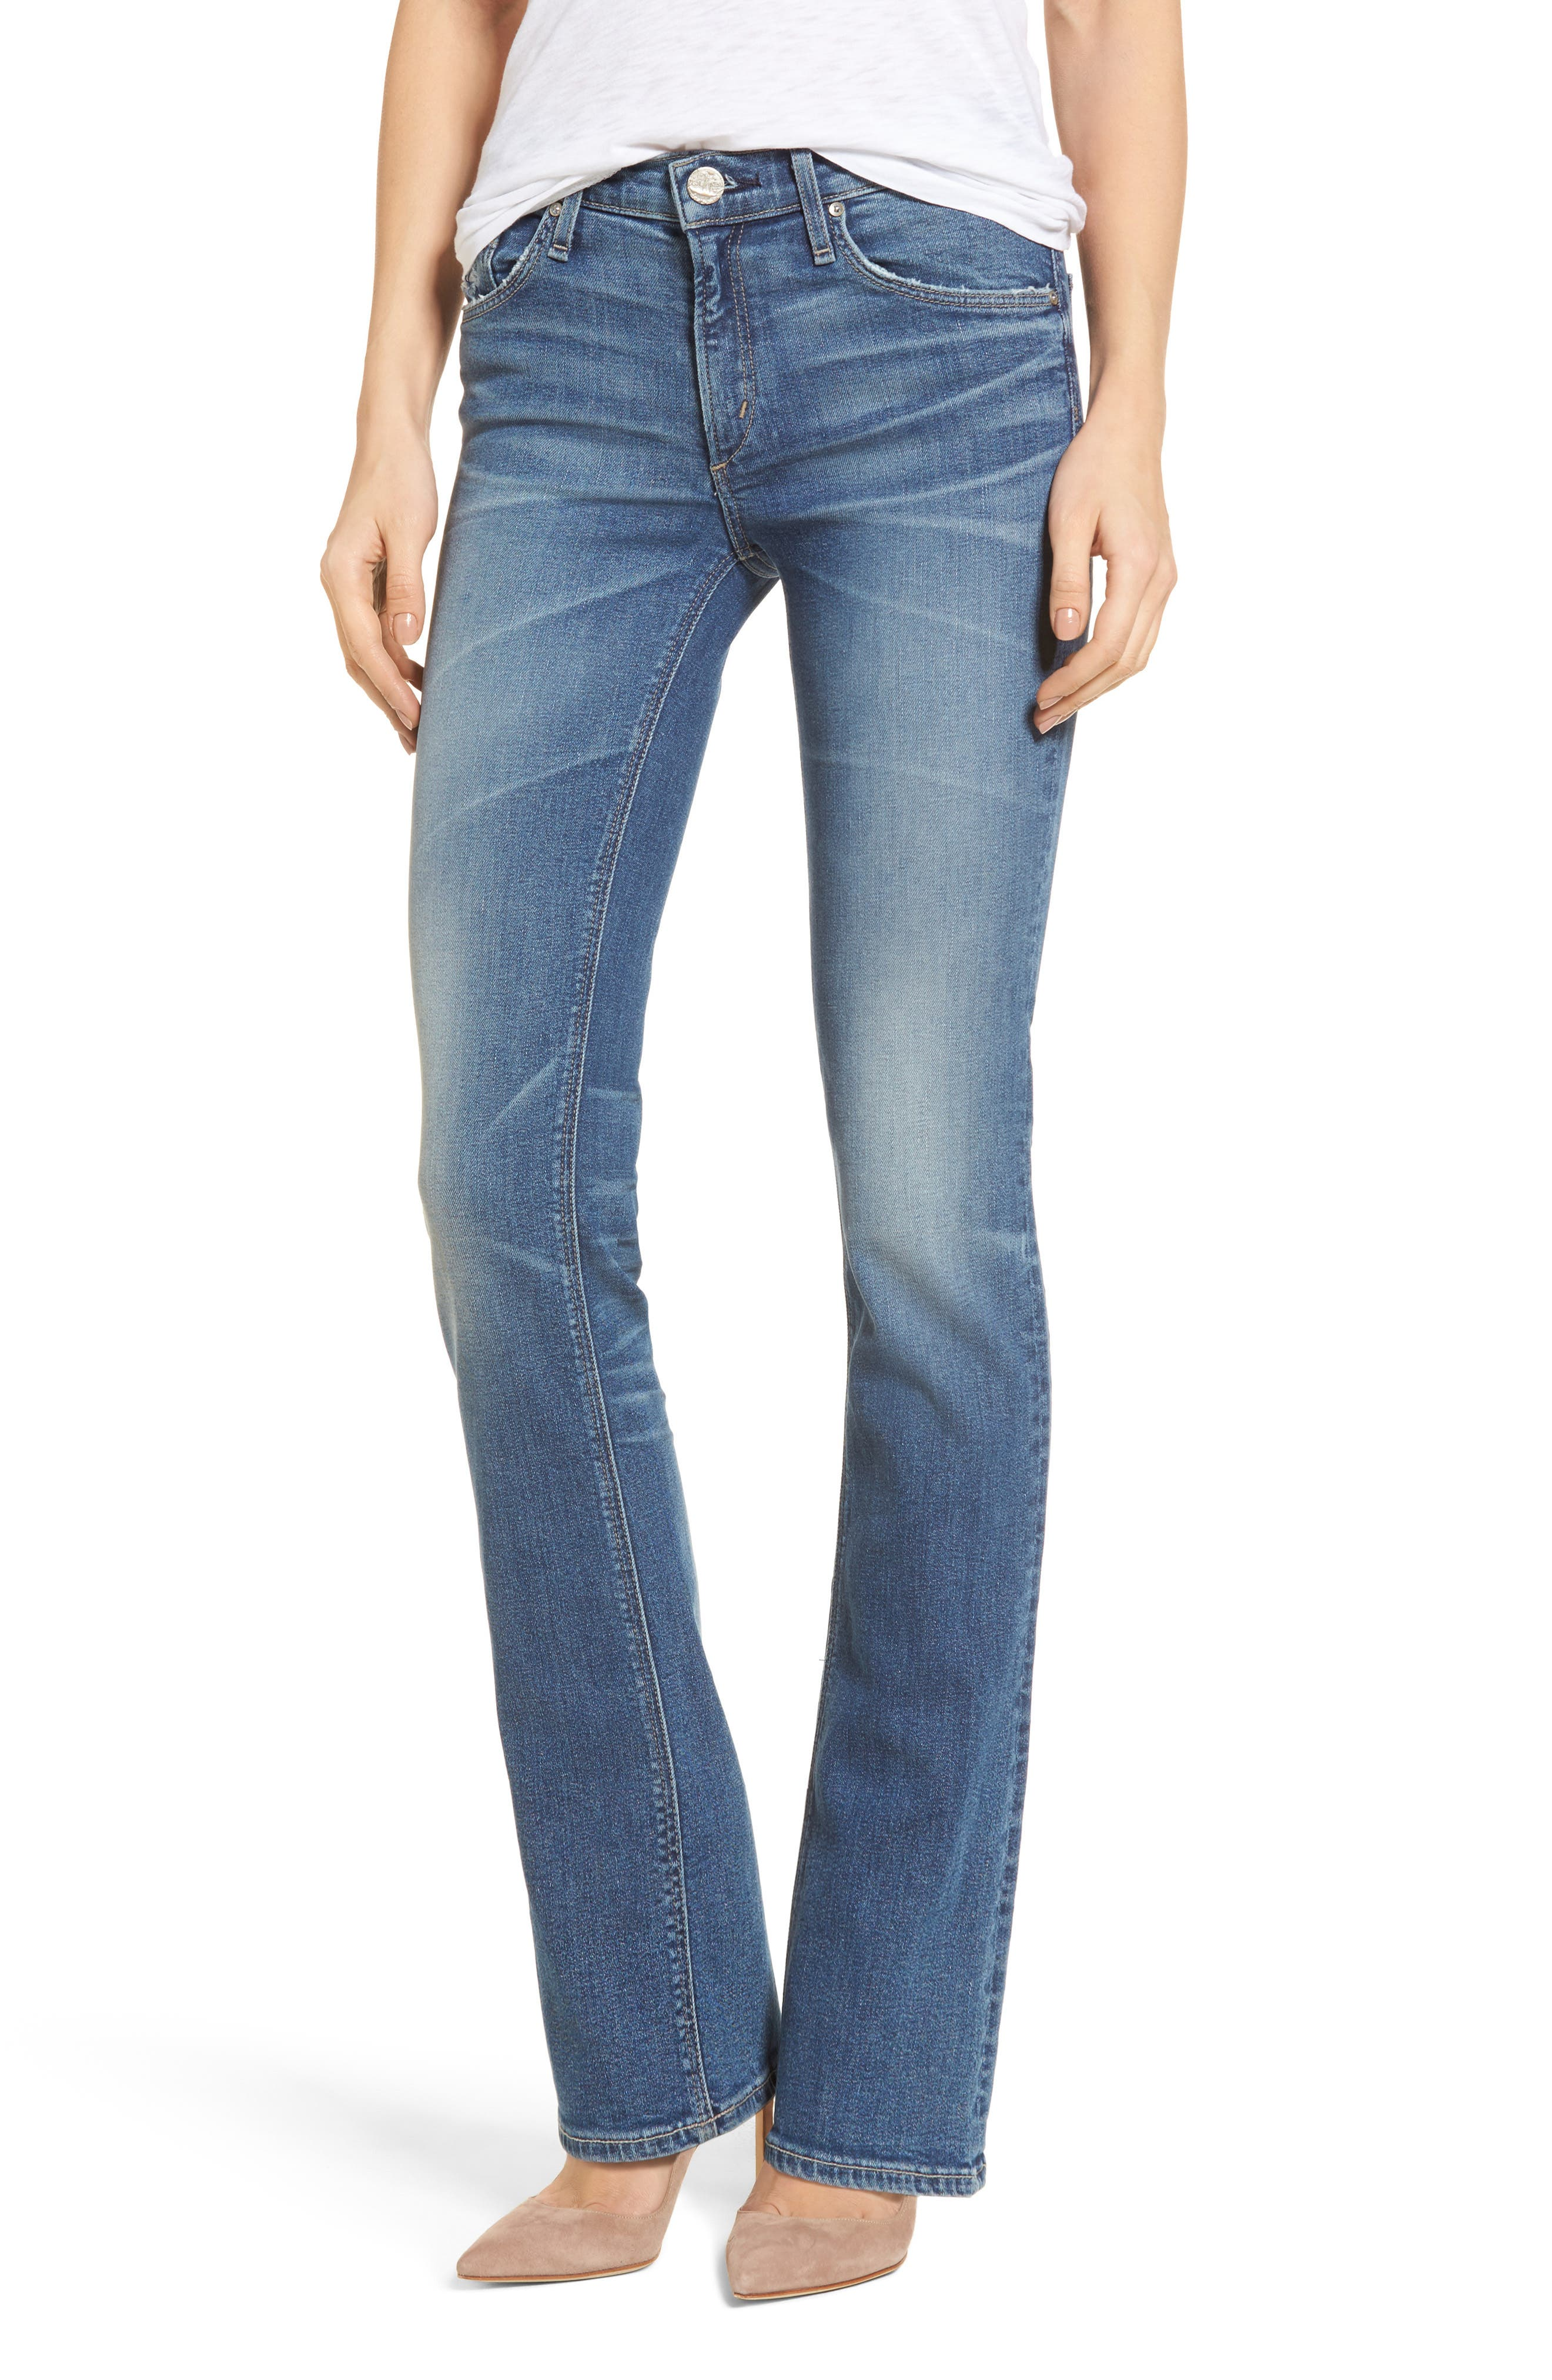 McGuire Gainsbourg High Waist Bootcut Jeans (Excuse Me Sir)